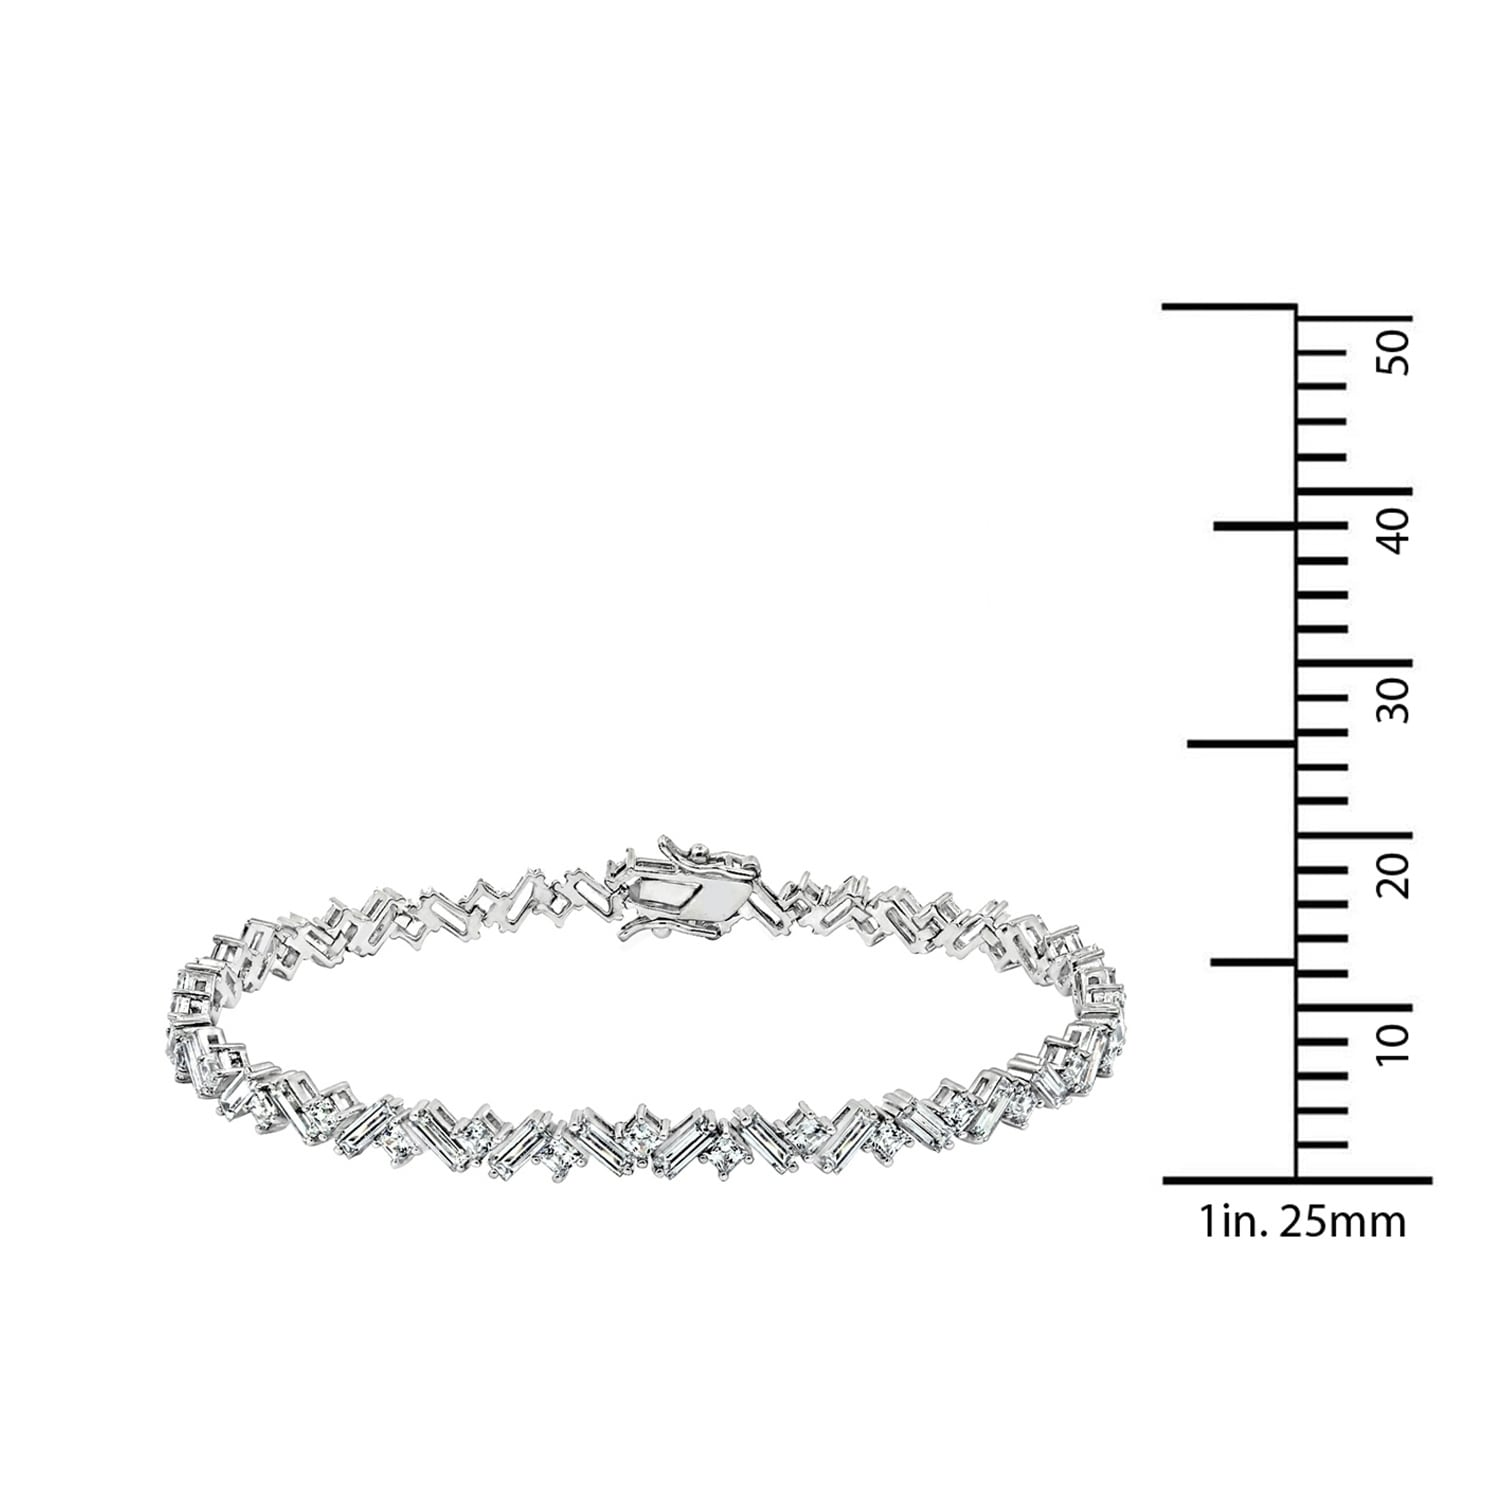 45f83ec4b65f7 Platinum-Plated Sterling Silver Clear Baguette and Square Swarovski  Zirconia Tennis Bracelet, 7,25